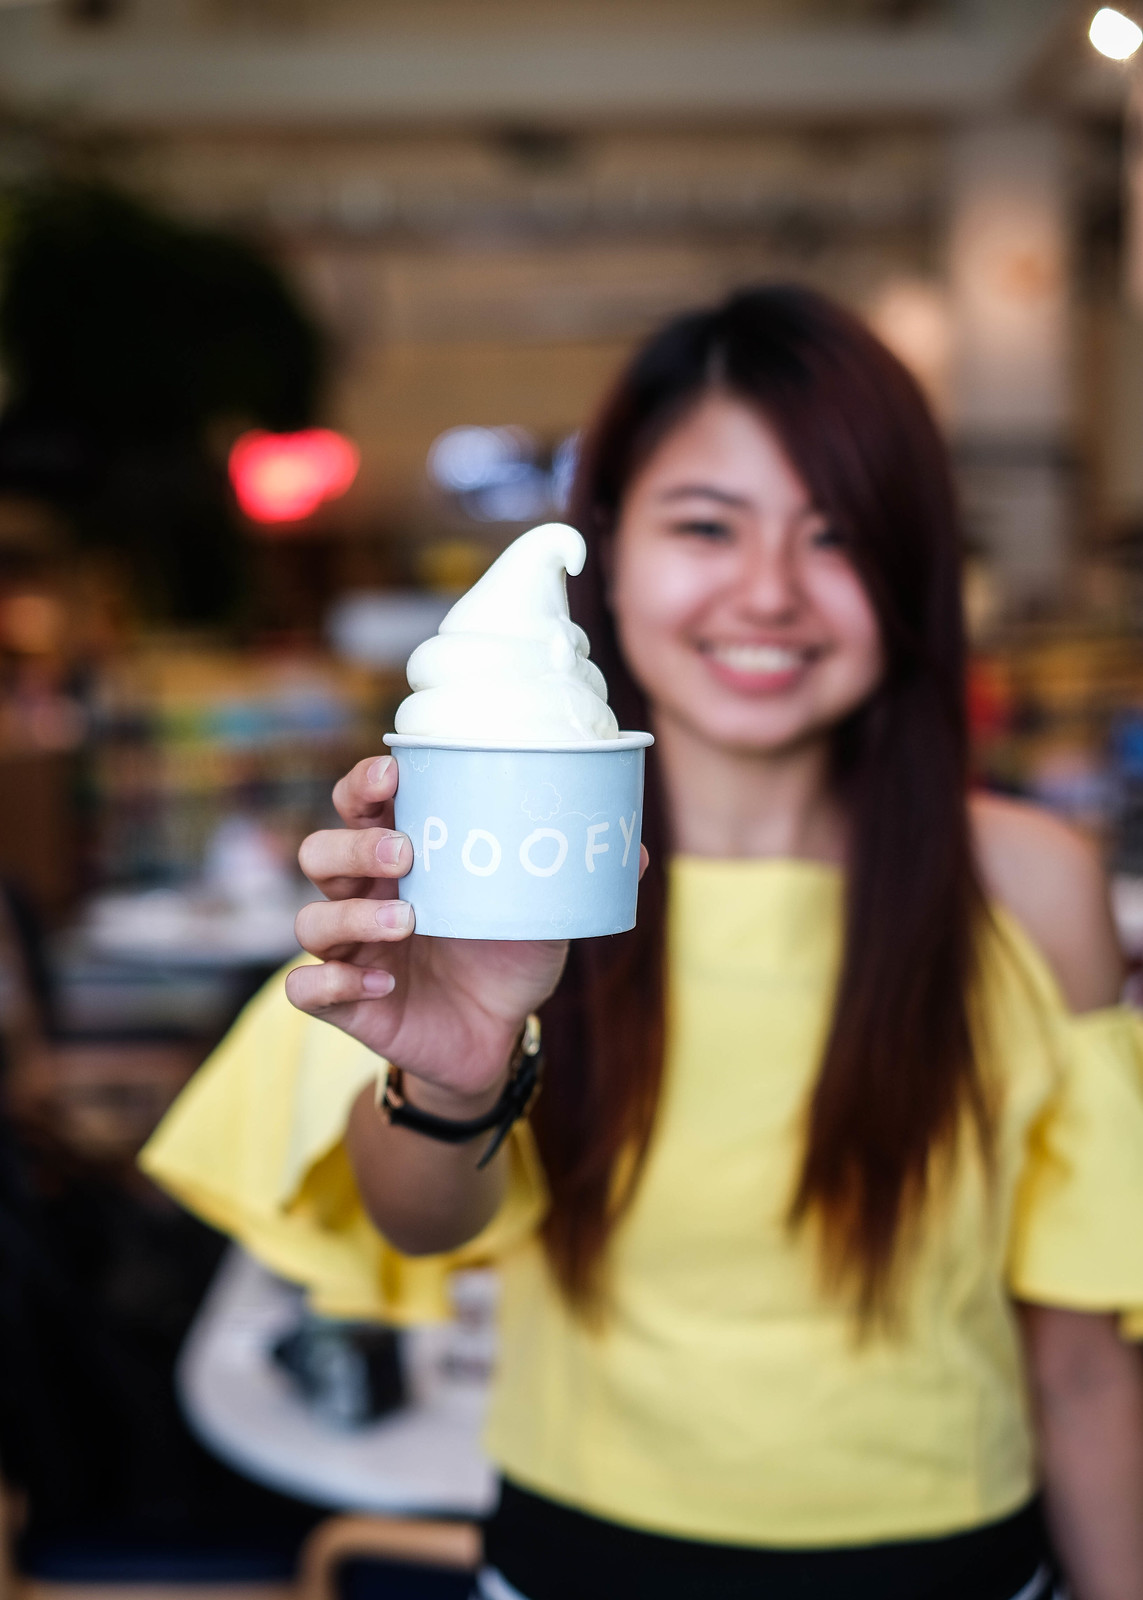 Hokkaido Milk Soft Serve in a cup at Habitat by Honestbee